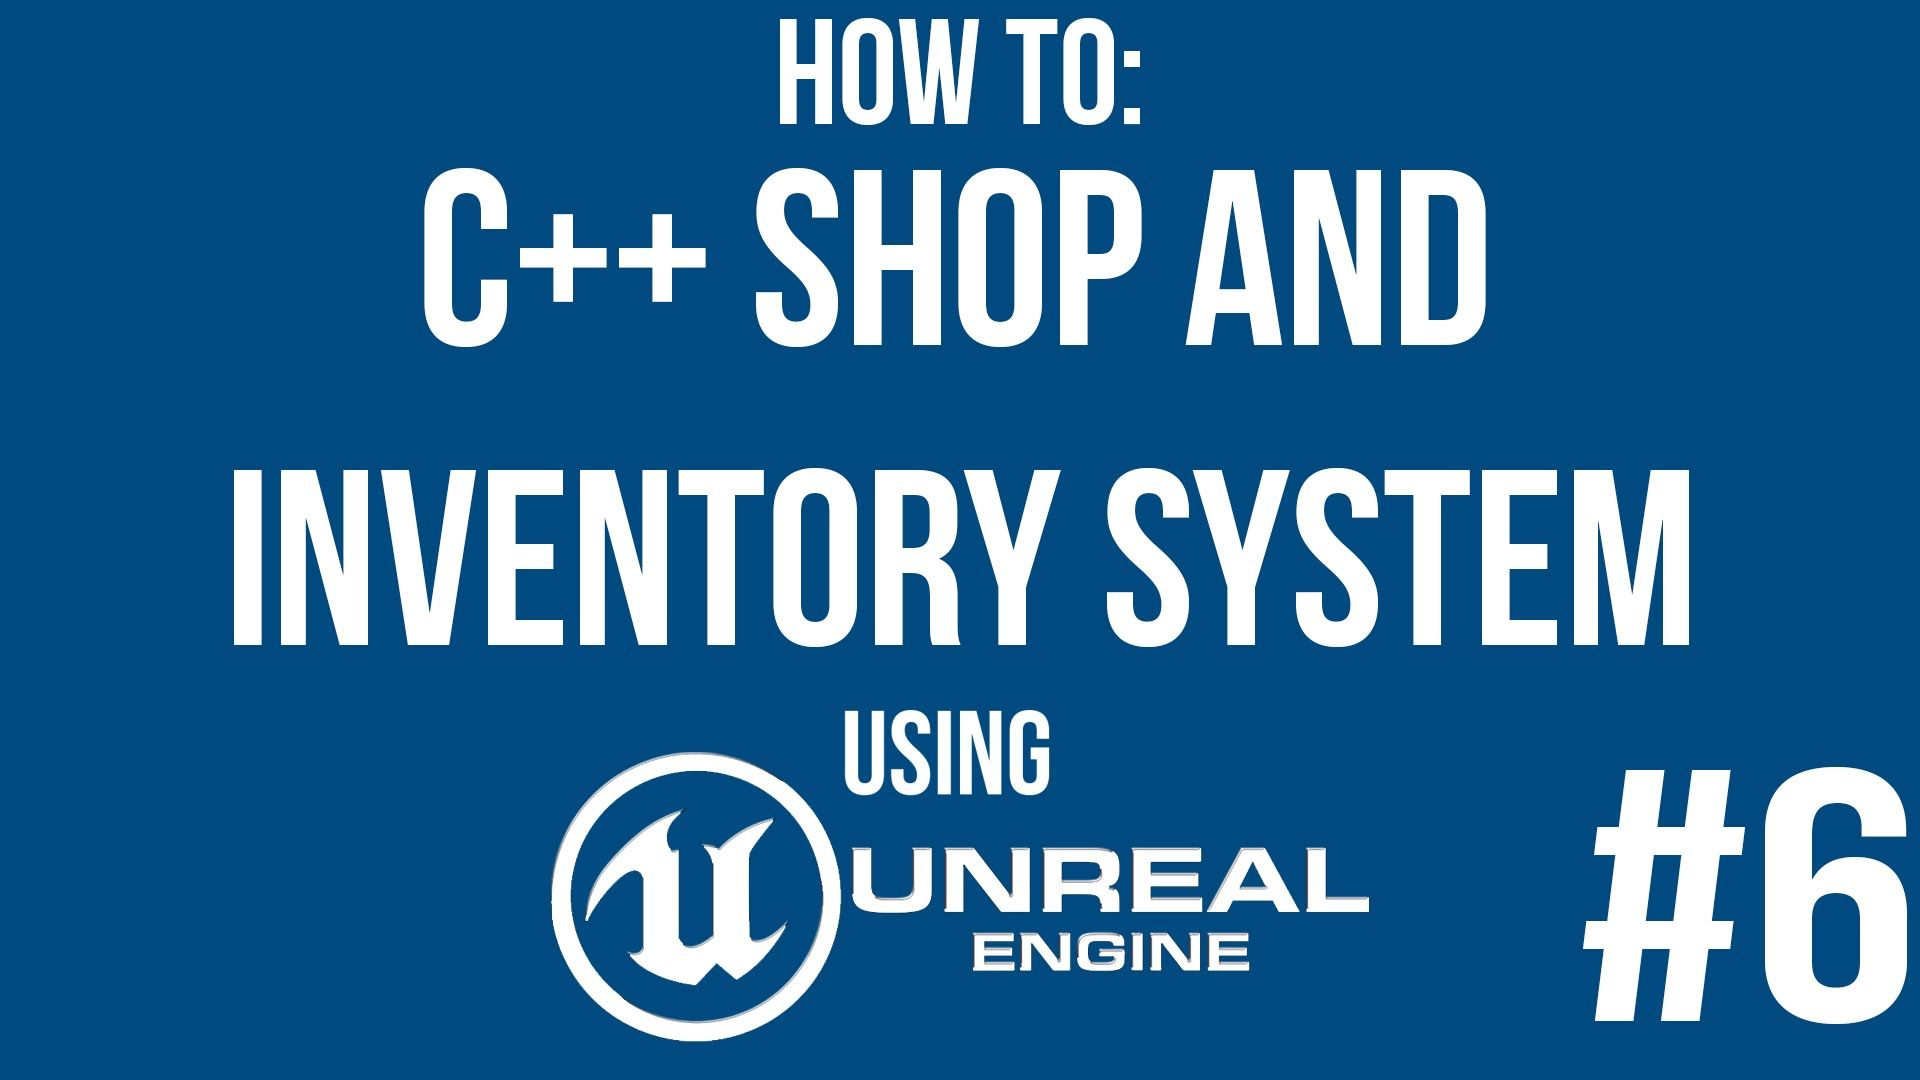 Unreal Engine C++ Shop and Inventory System Tutorial - #6 | Unreal